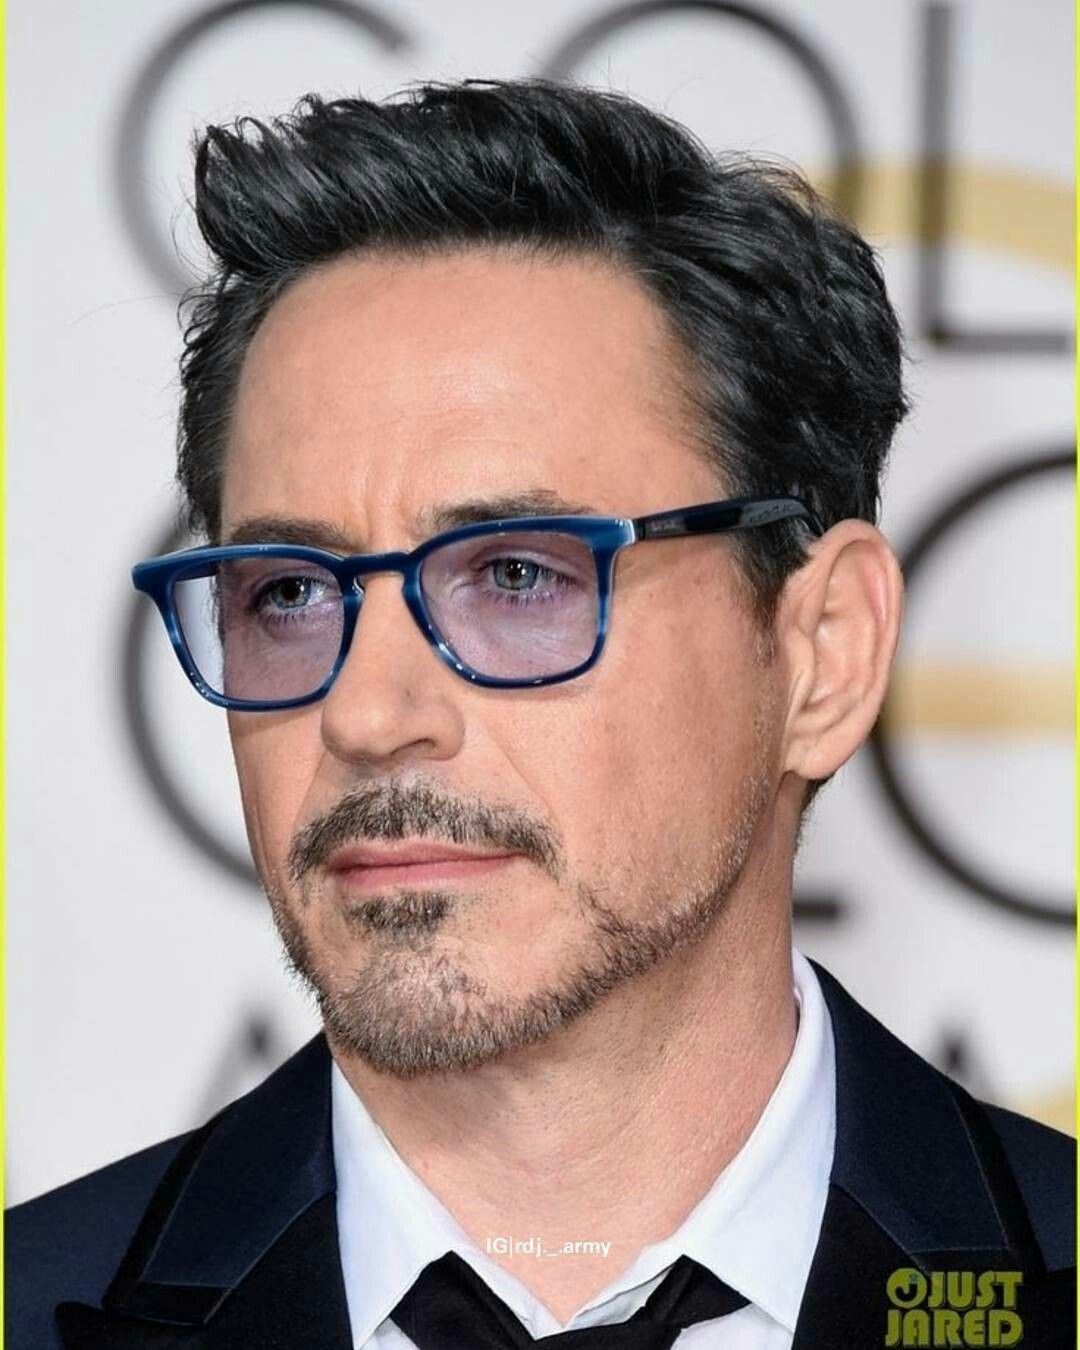 robert downey jr. | robert Đowney jr | robert downey jr